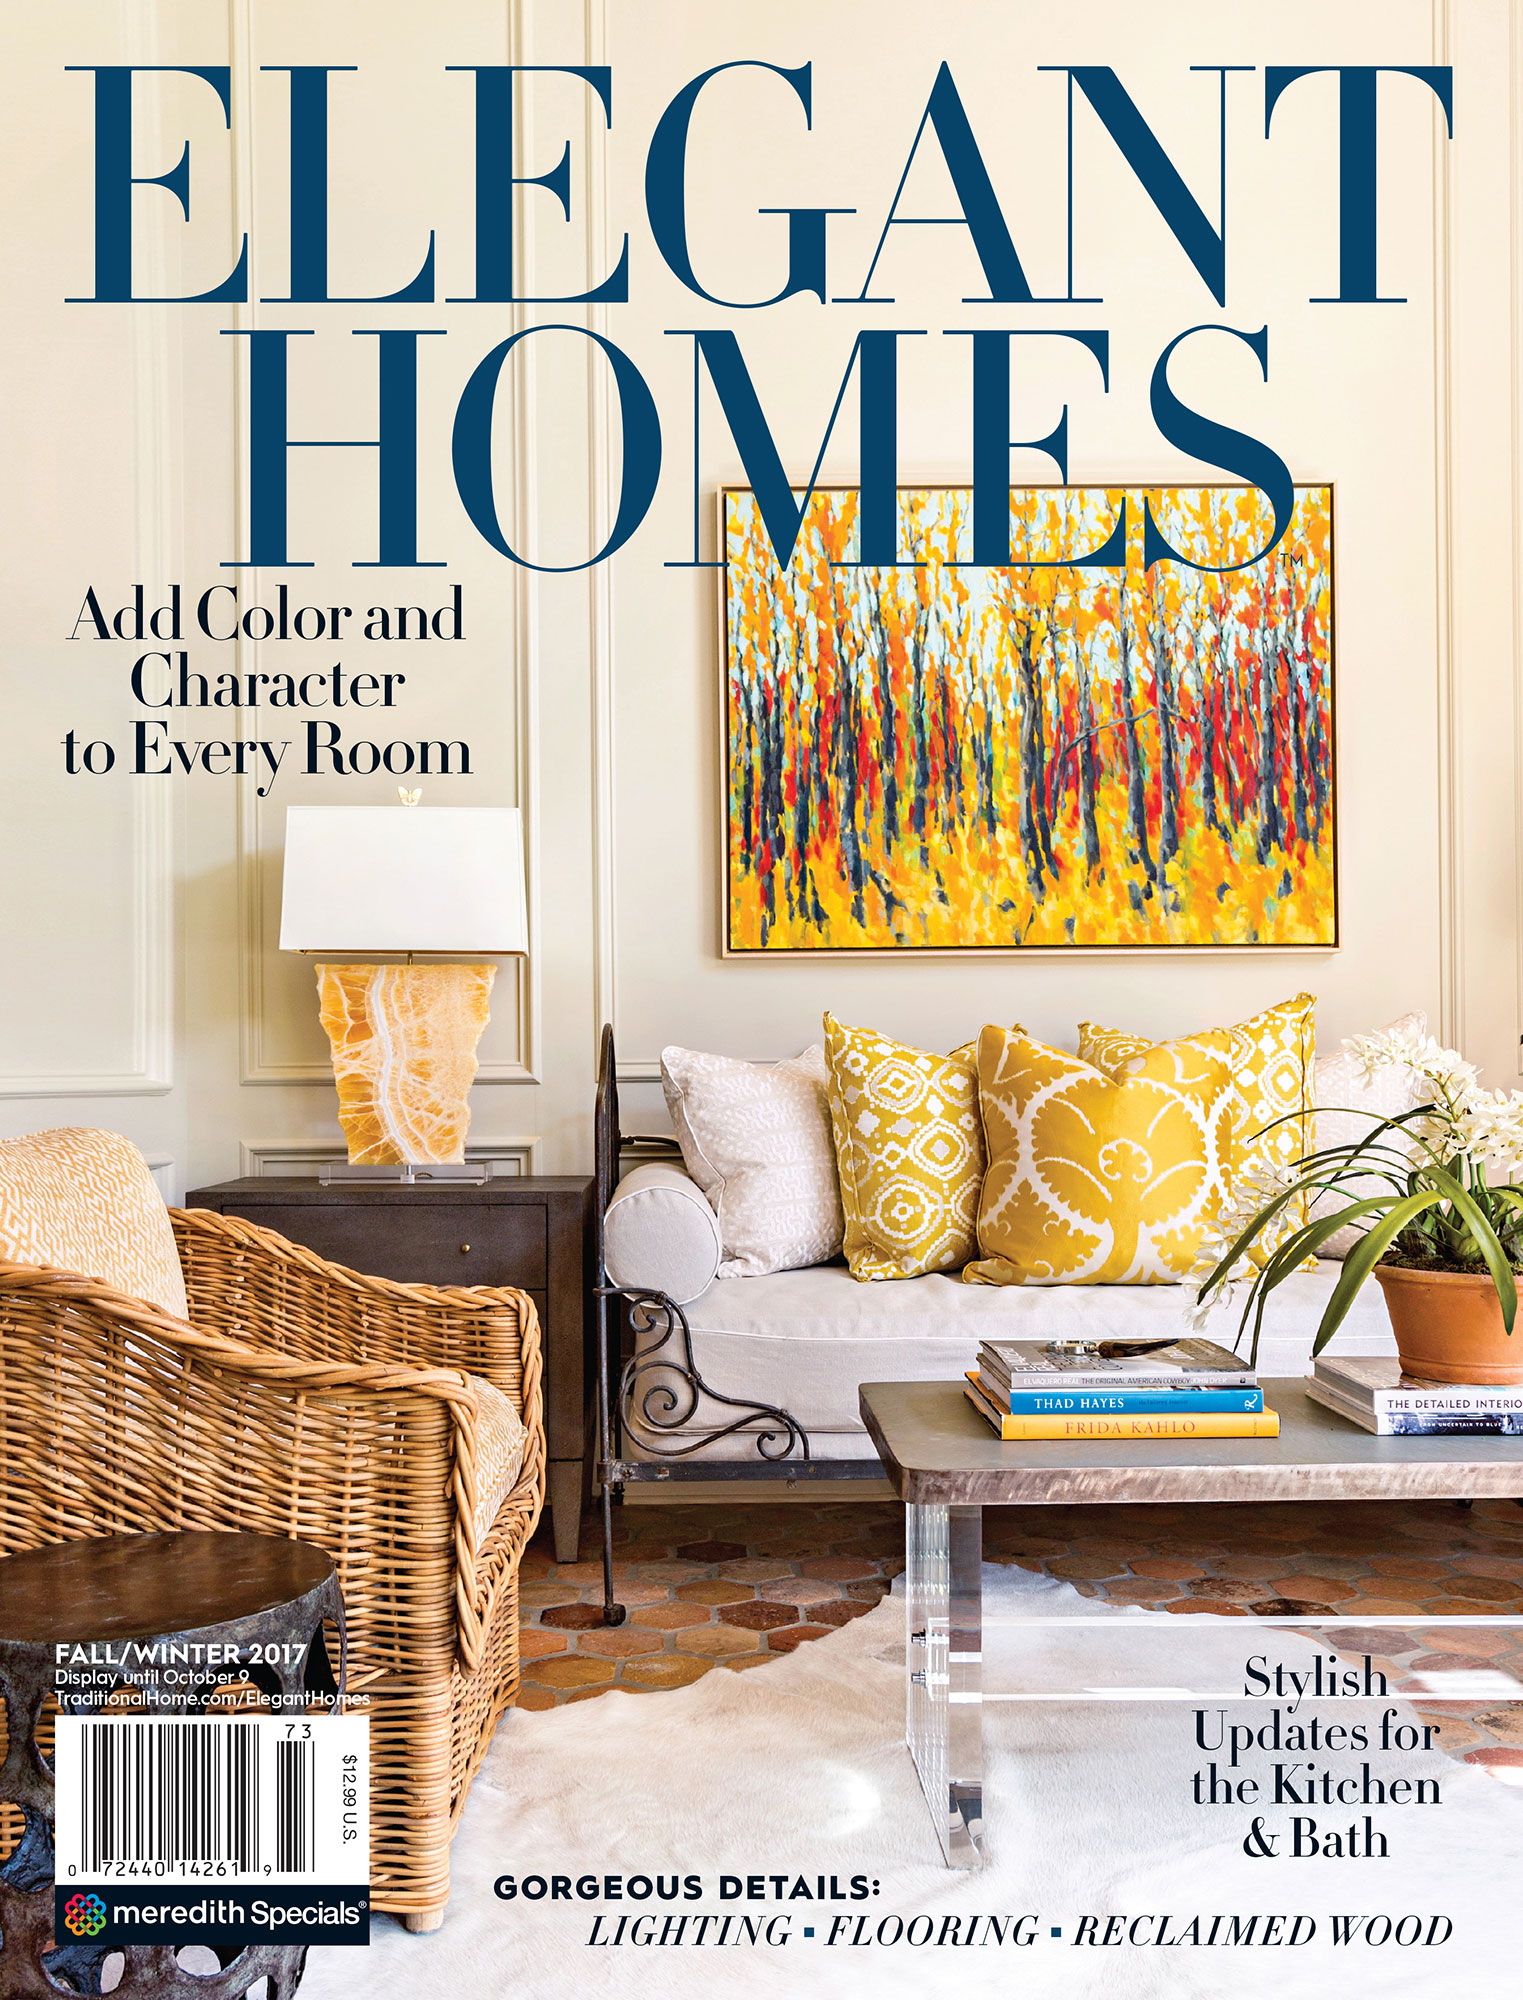 Elegant Homes - Magazine Photography - Julie Soefer Photography